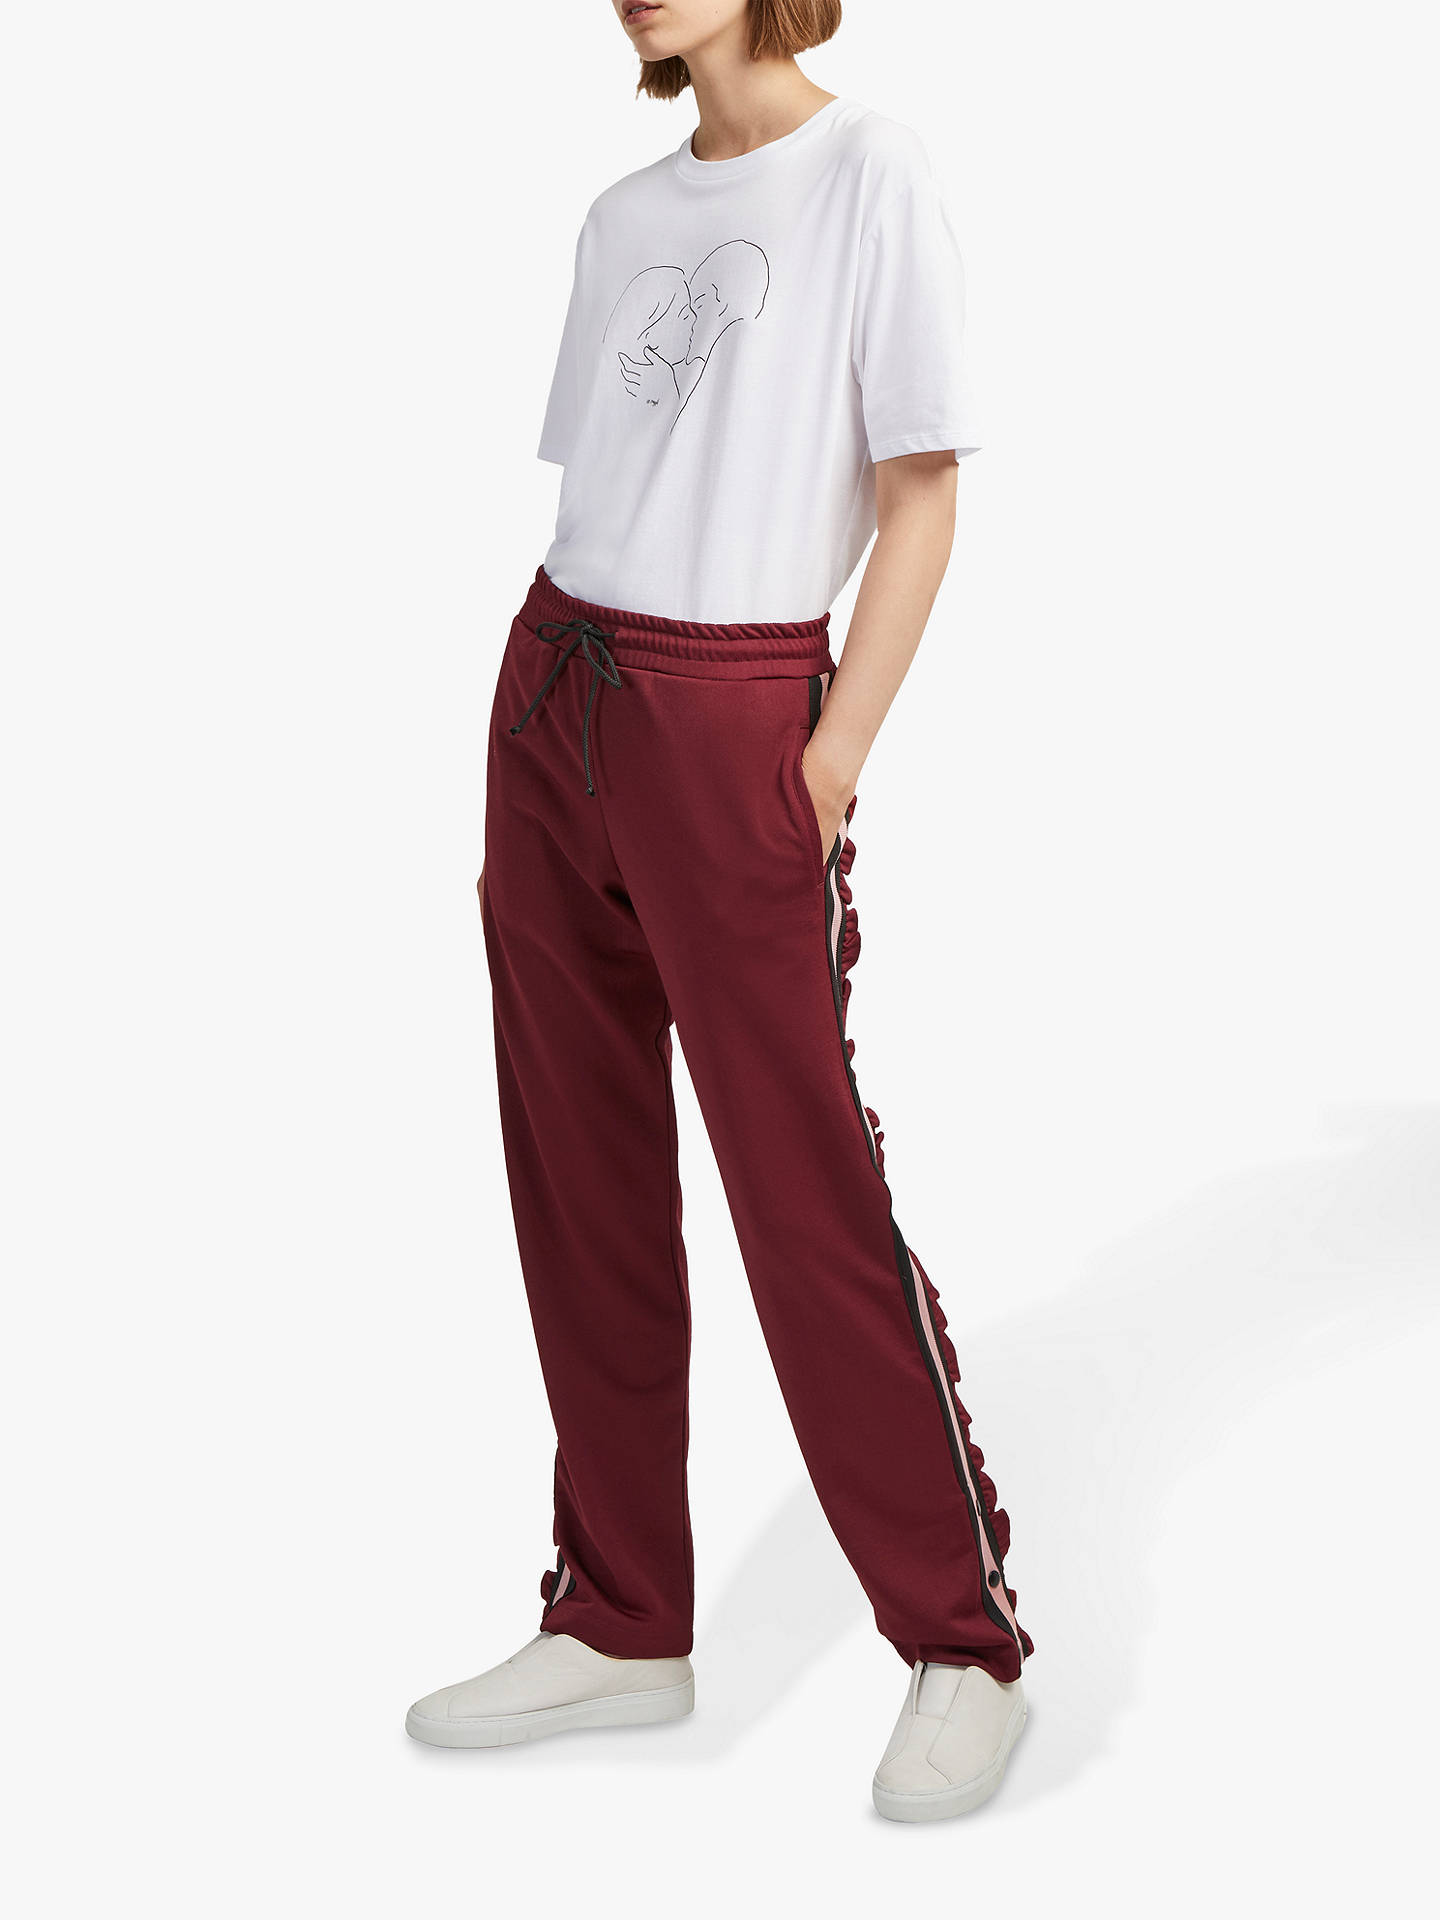 BuyFrench Connection Yvonne Stripe Joggers, Rosso Red, M Online at johnlewis.com